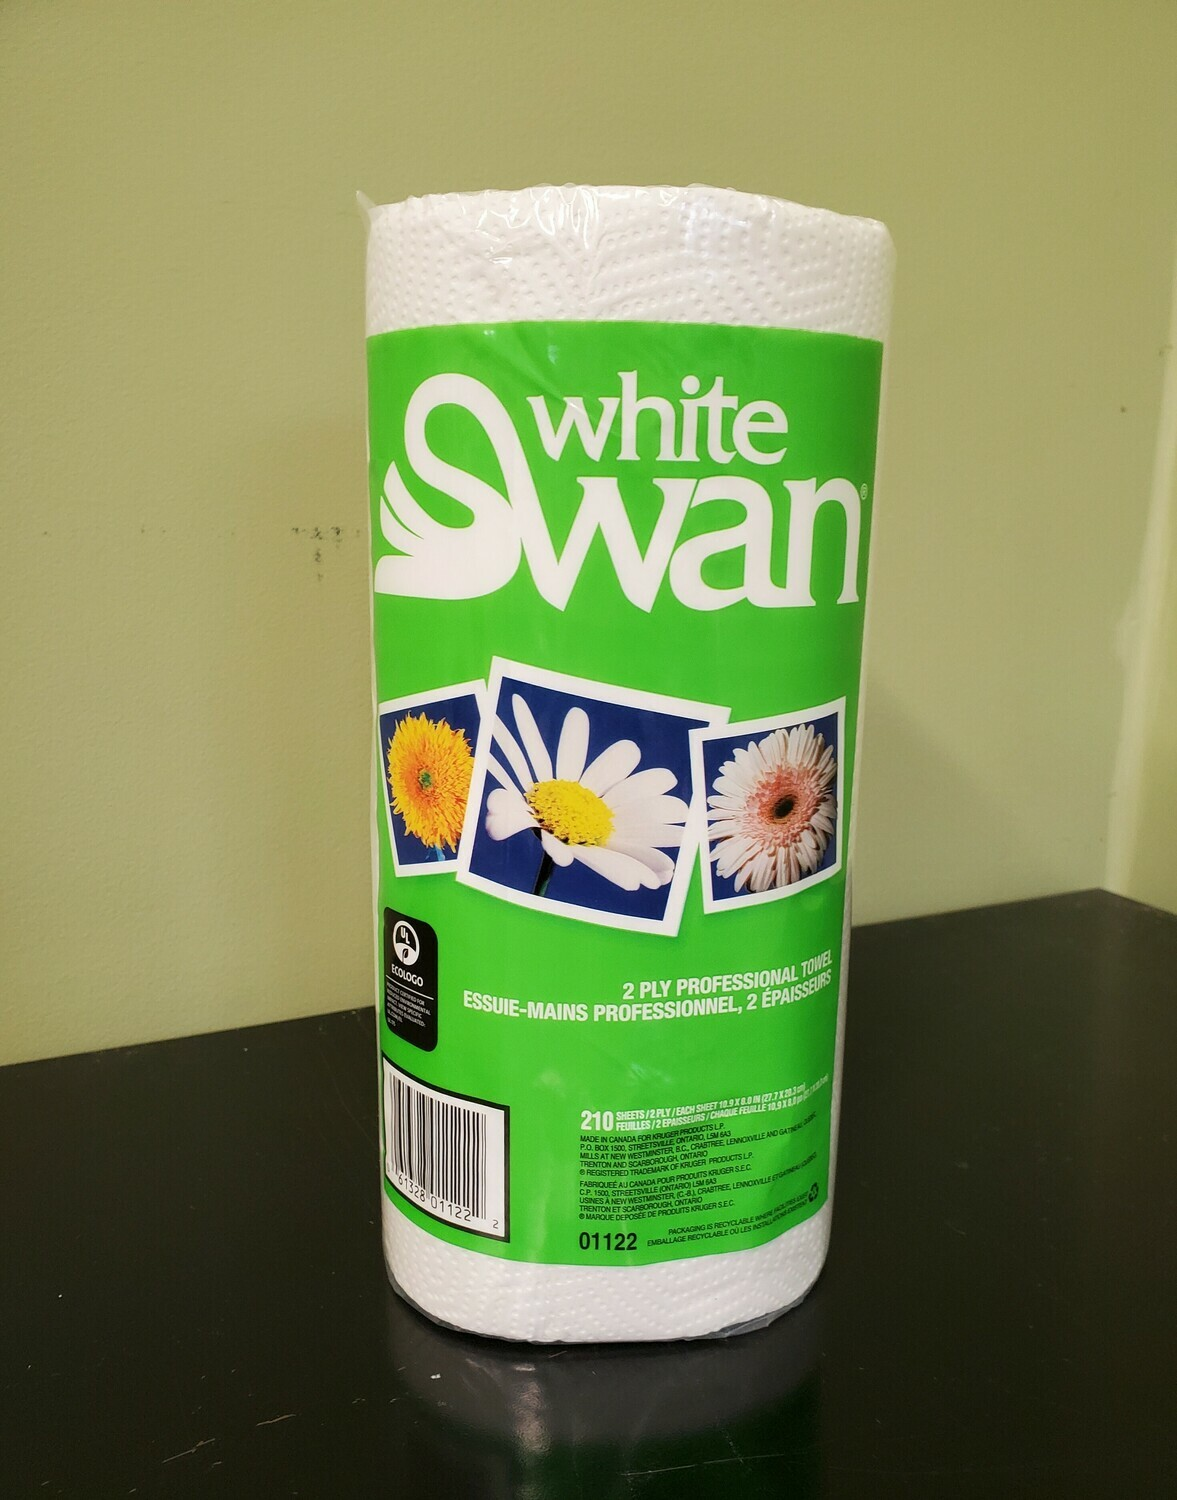 White Swan Paper Towel